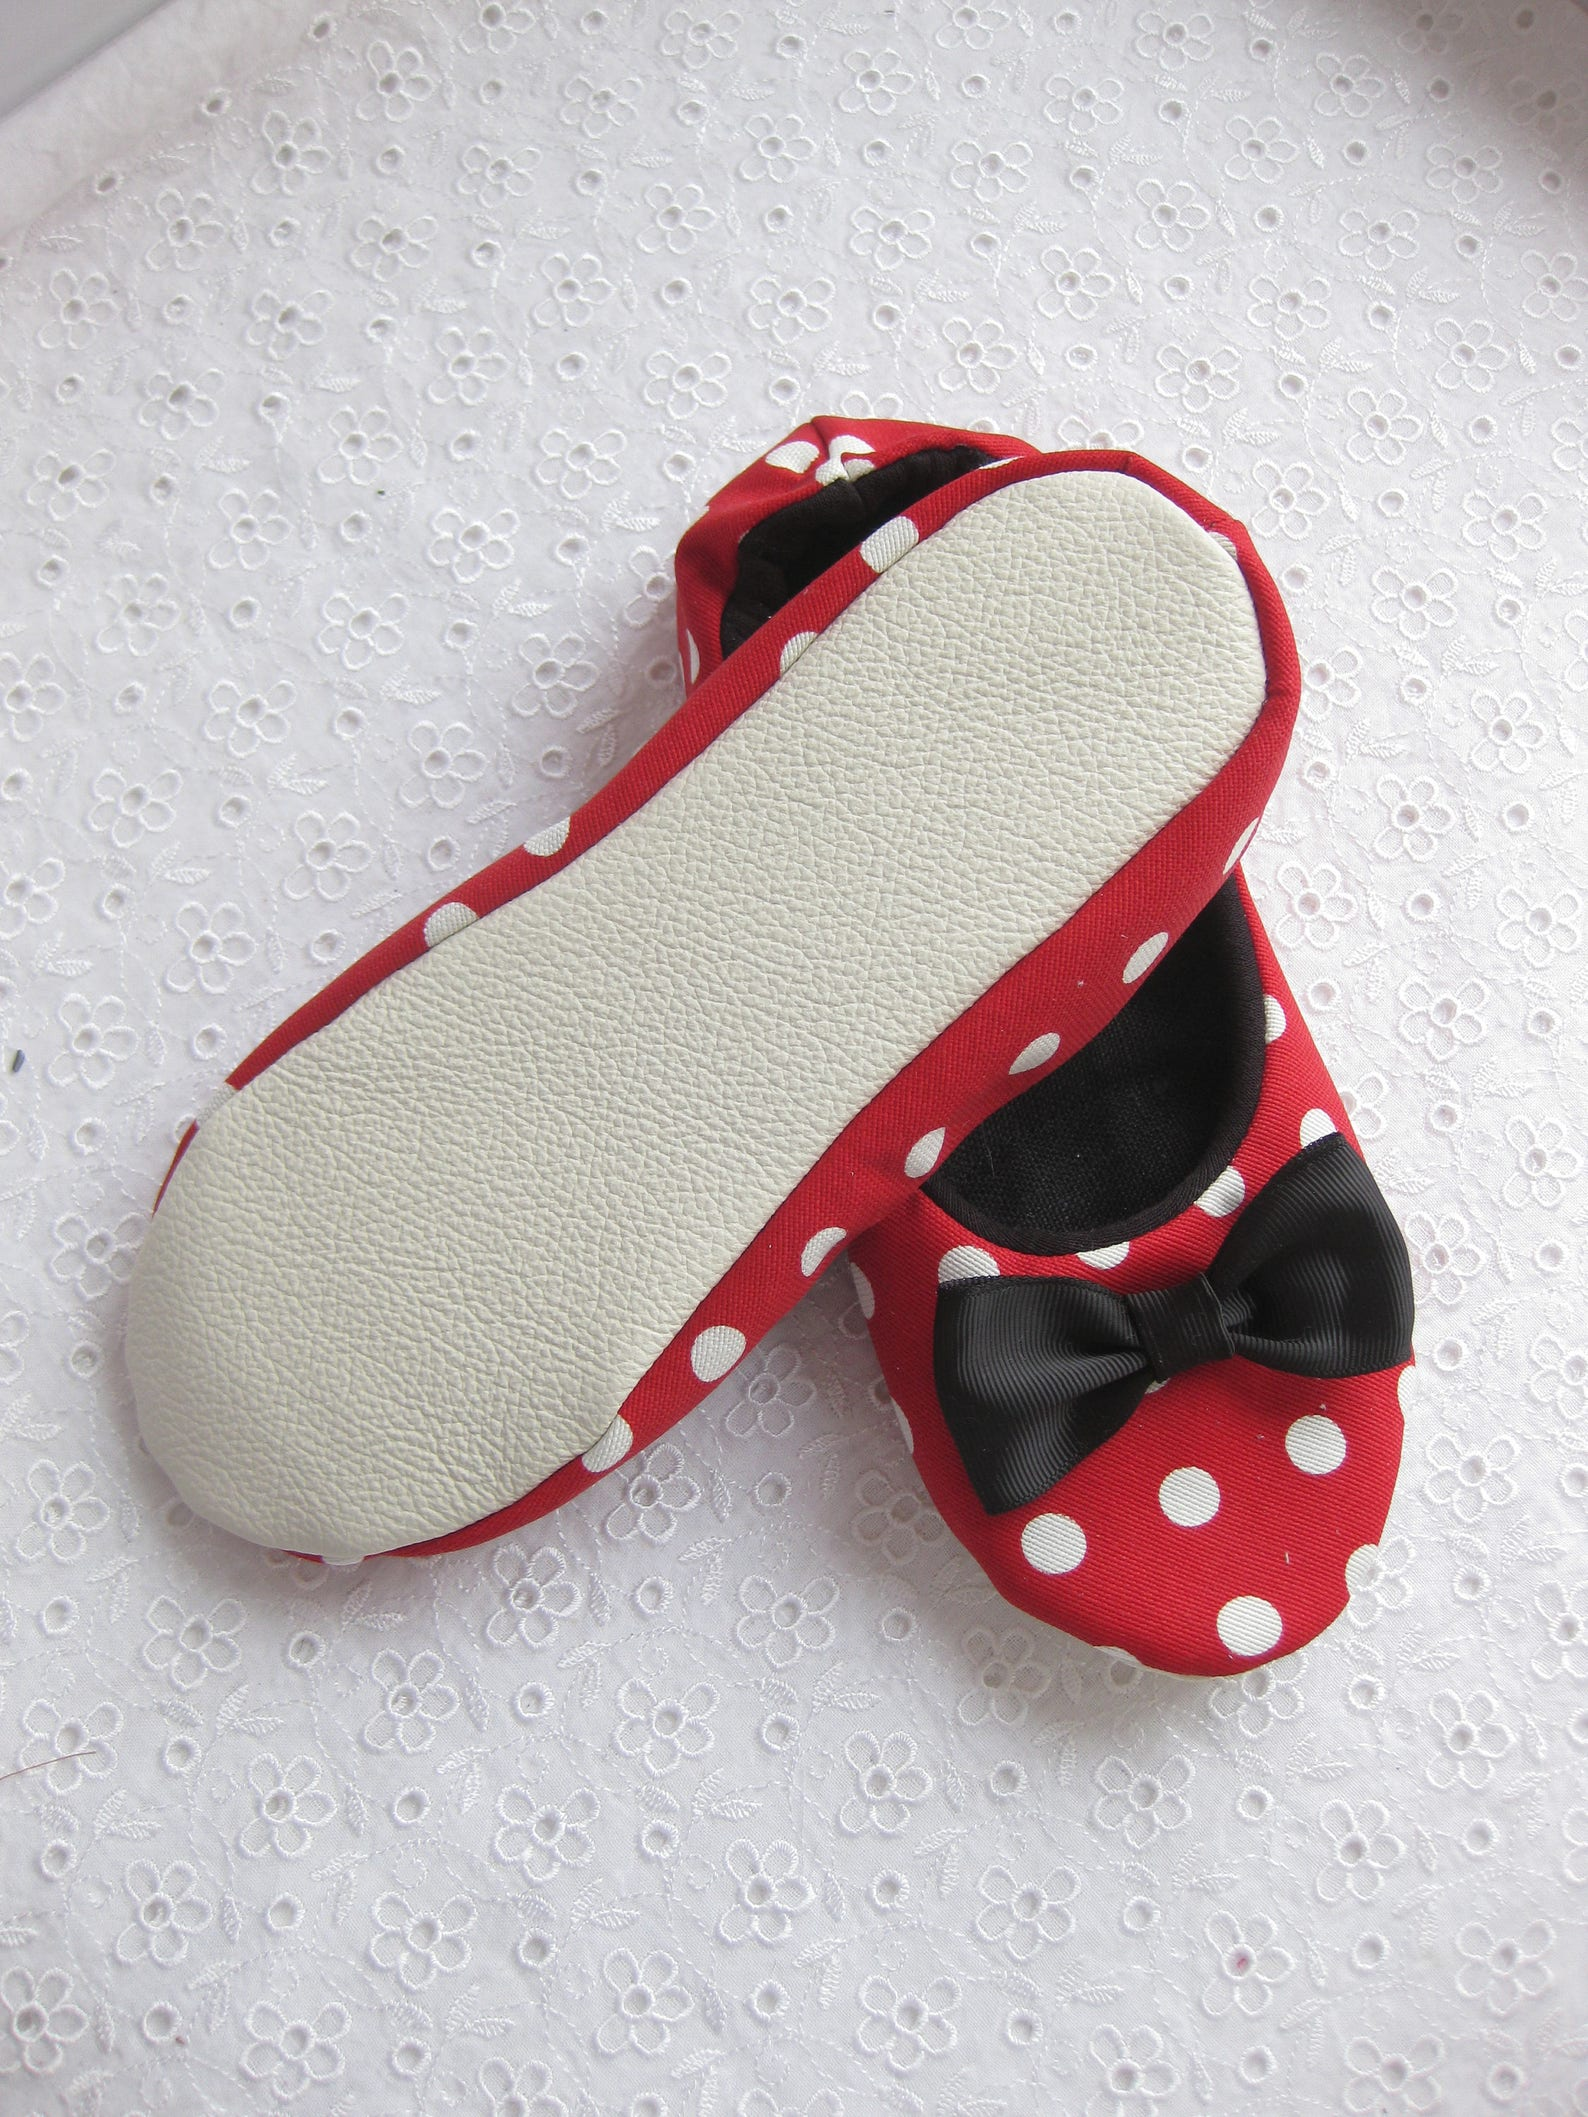 ballet slippers, mini mouse ,spa slippers, cotton slippers, gift women, gift girl, cozy slippers, womens slippers, womens house